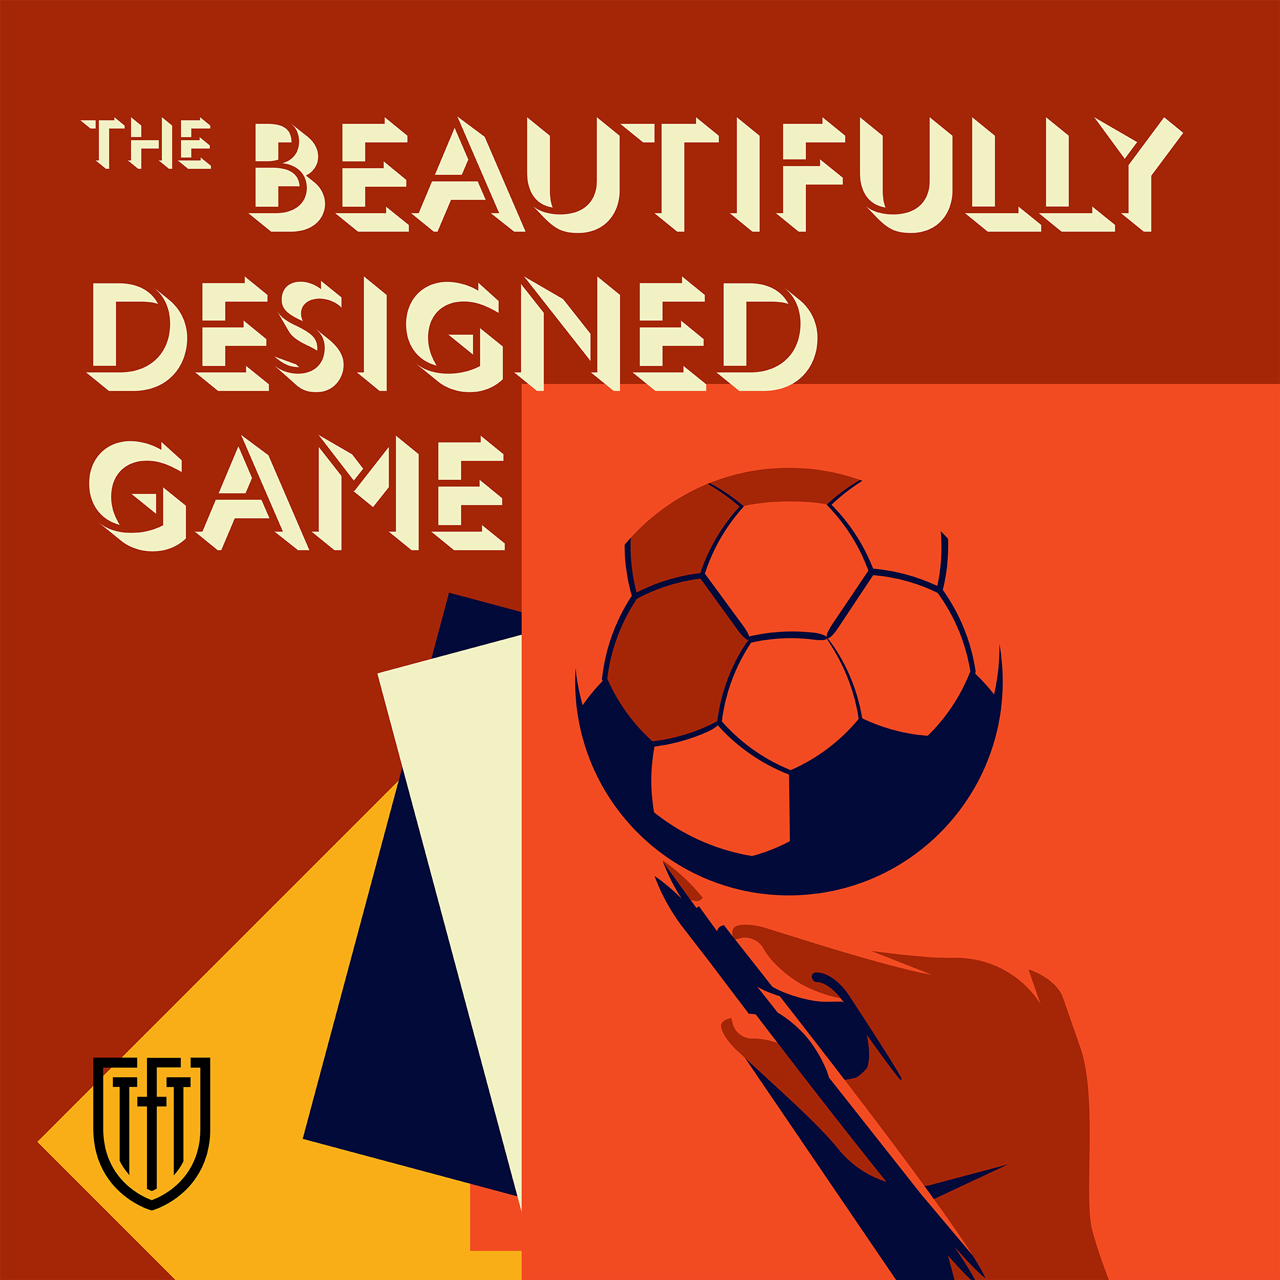 The Beautifully Designed Game with Karl Thyer